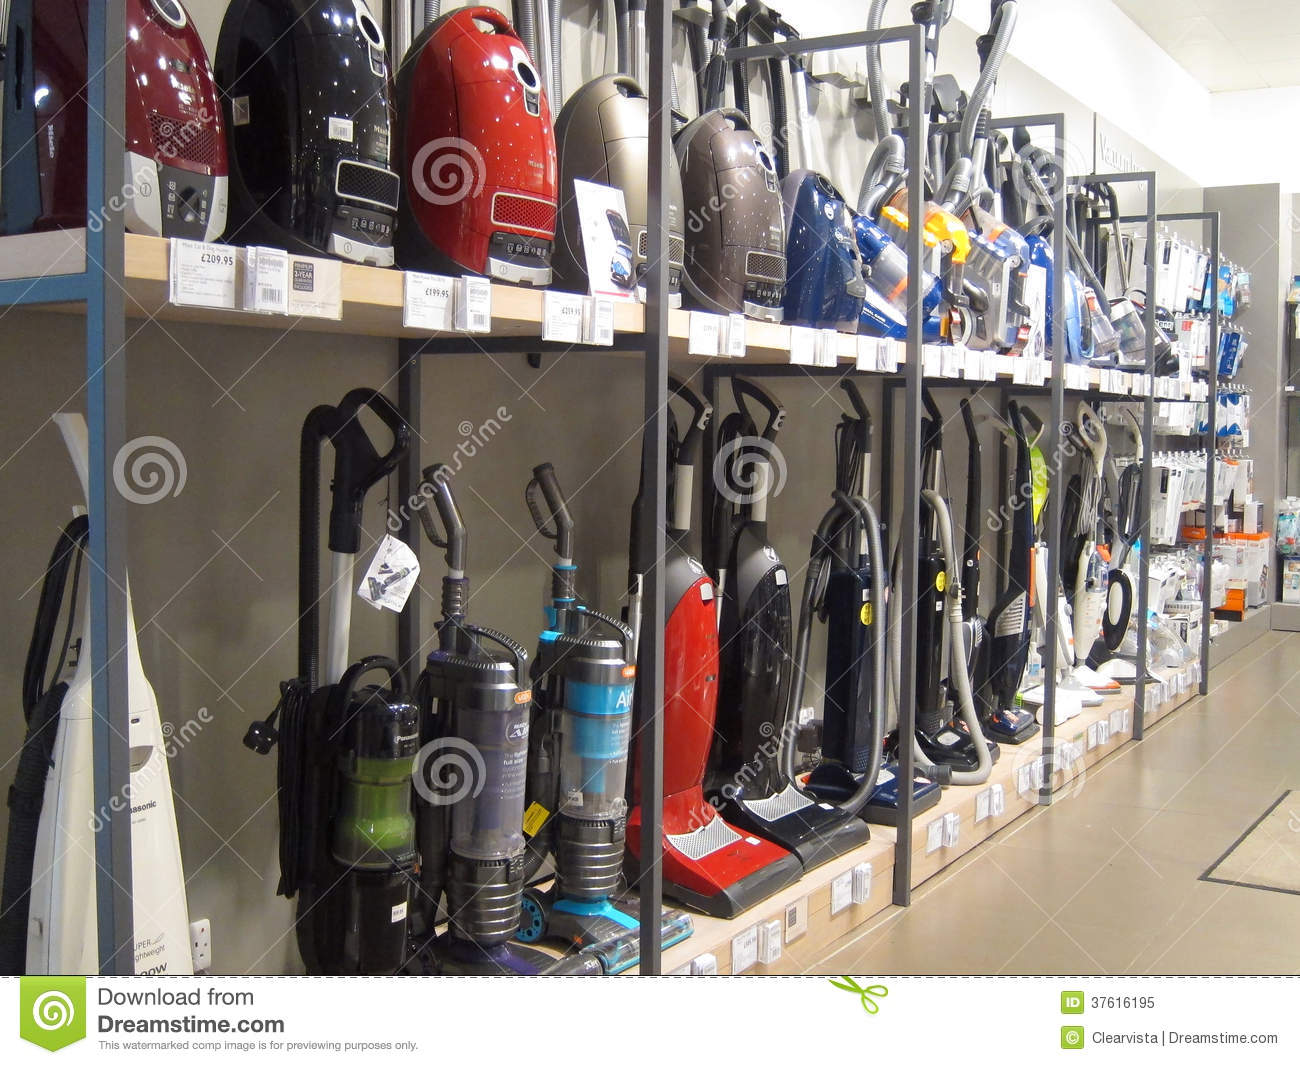 vacuum cleaners or hoovers for sale in a store  editorial